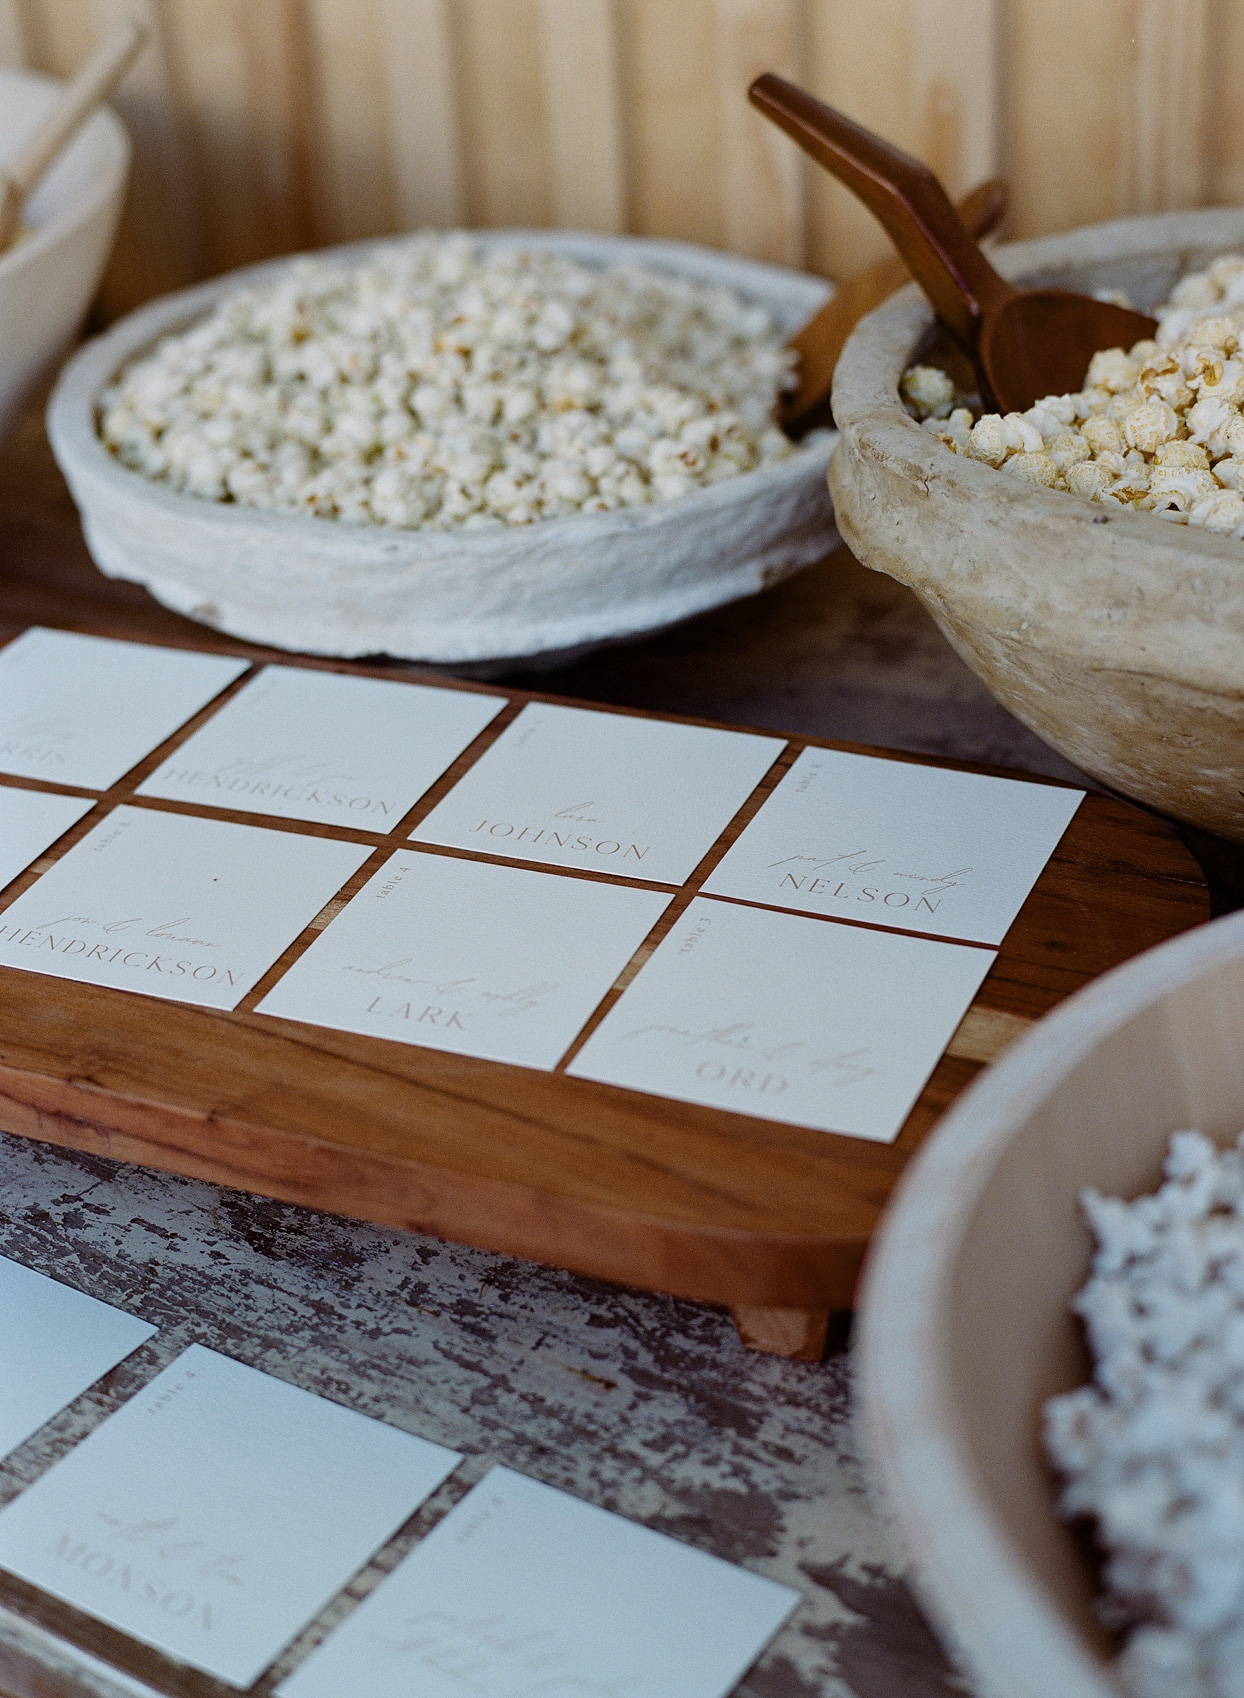 escort cards surrounded by popcorn filled bowls